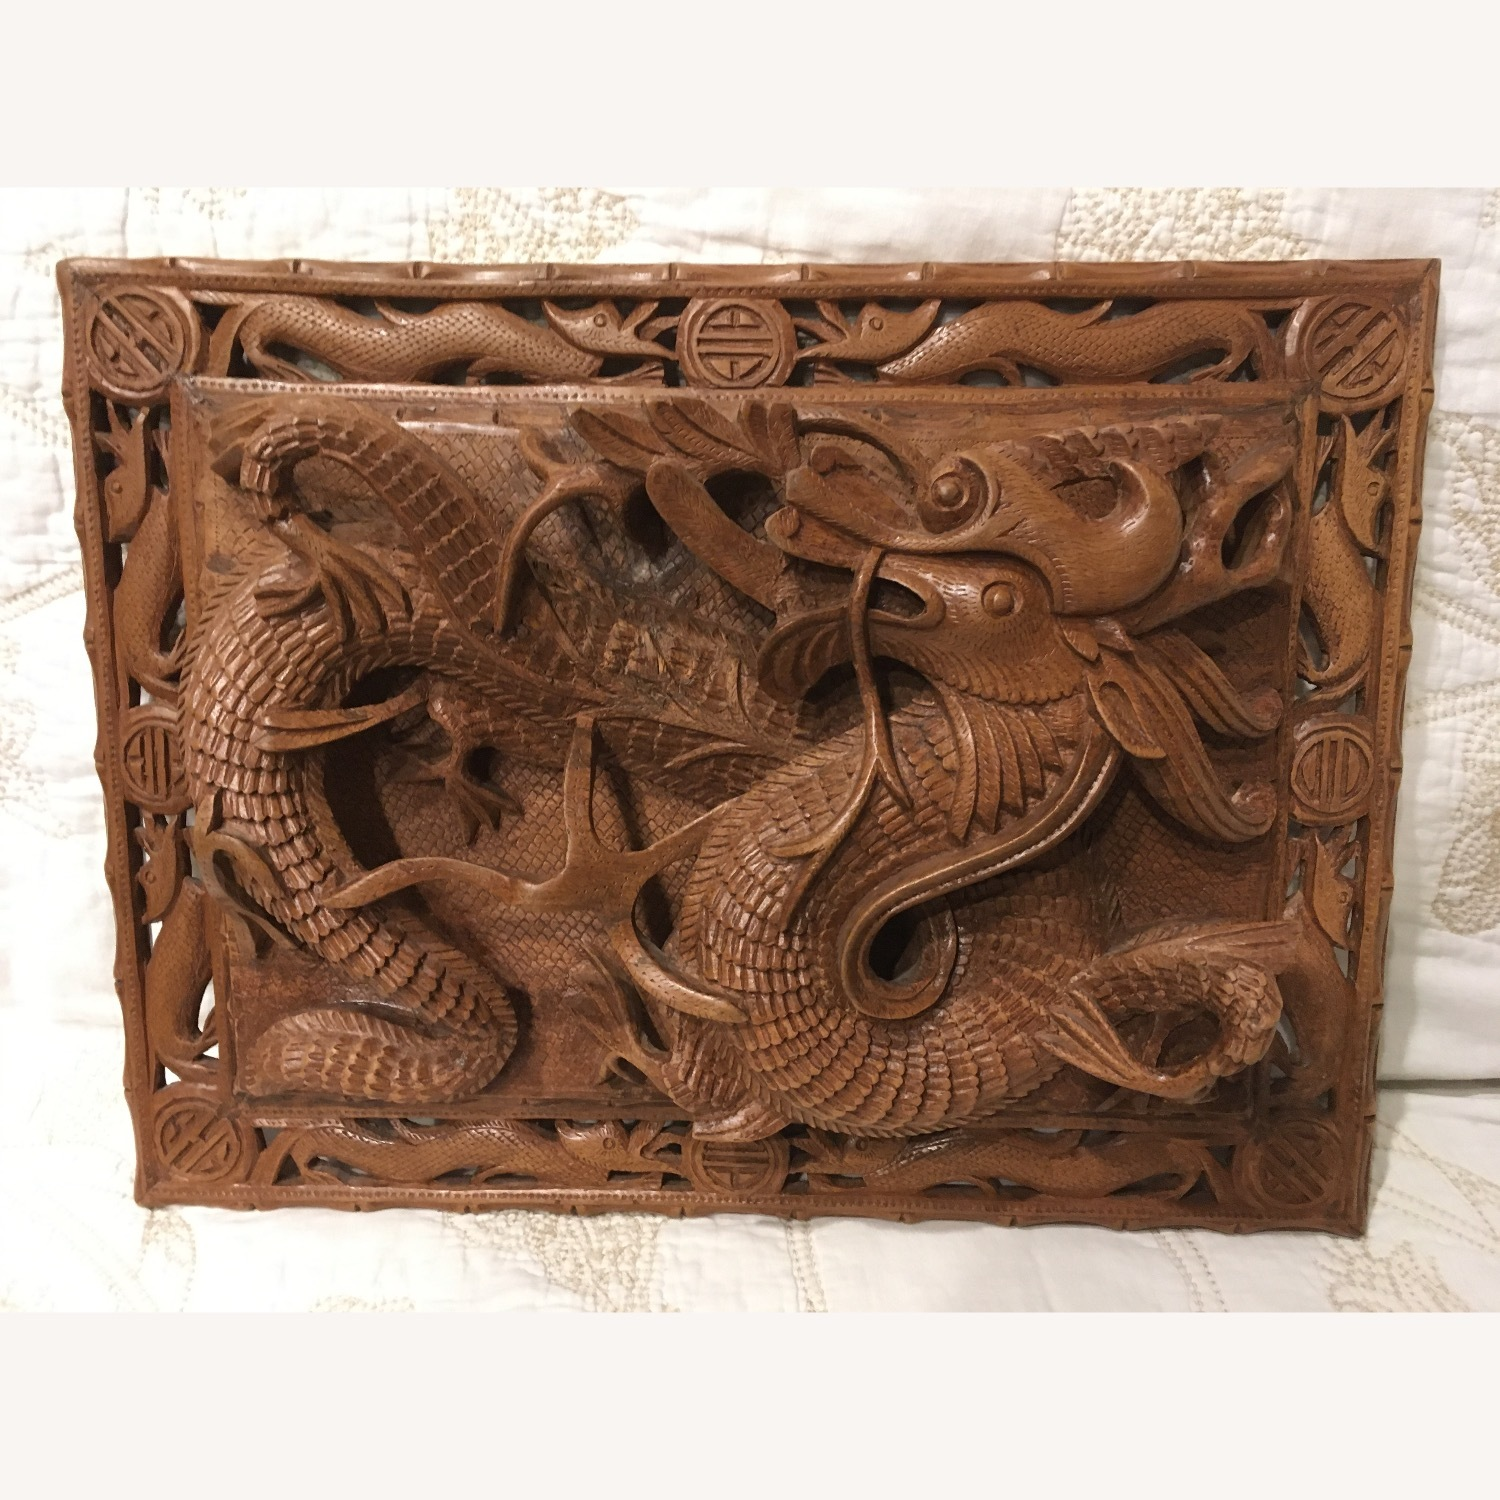 Original Indian Woodcraft Panels with Dragons - image-1